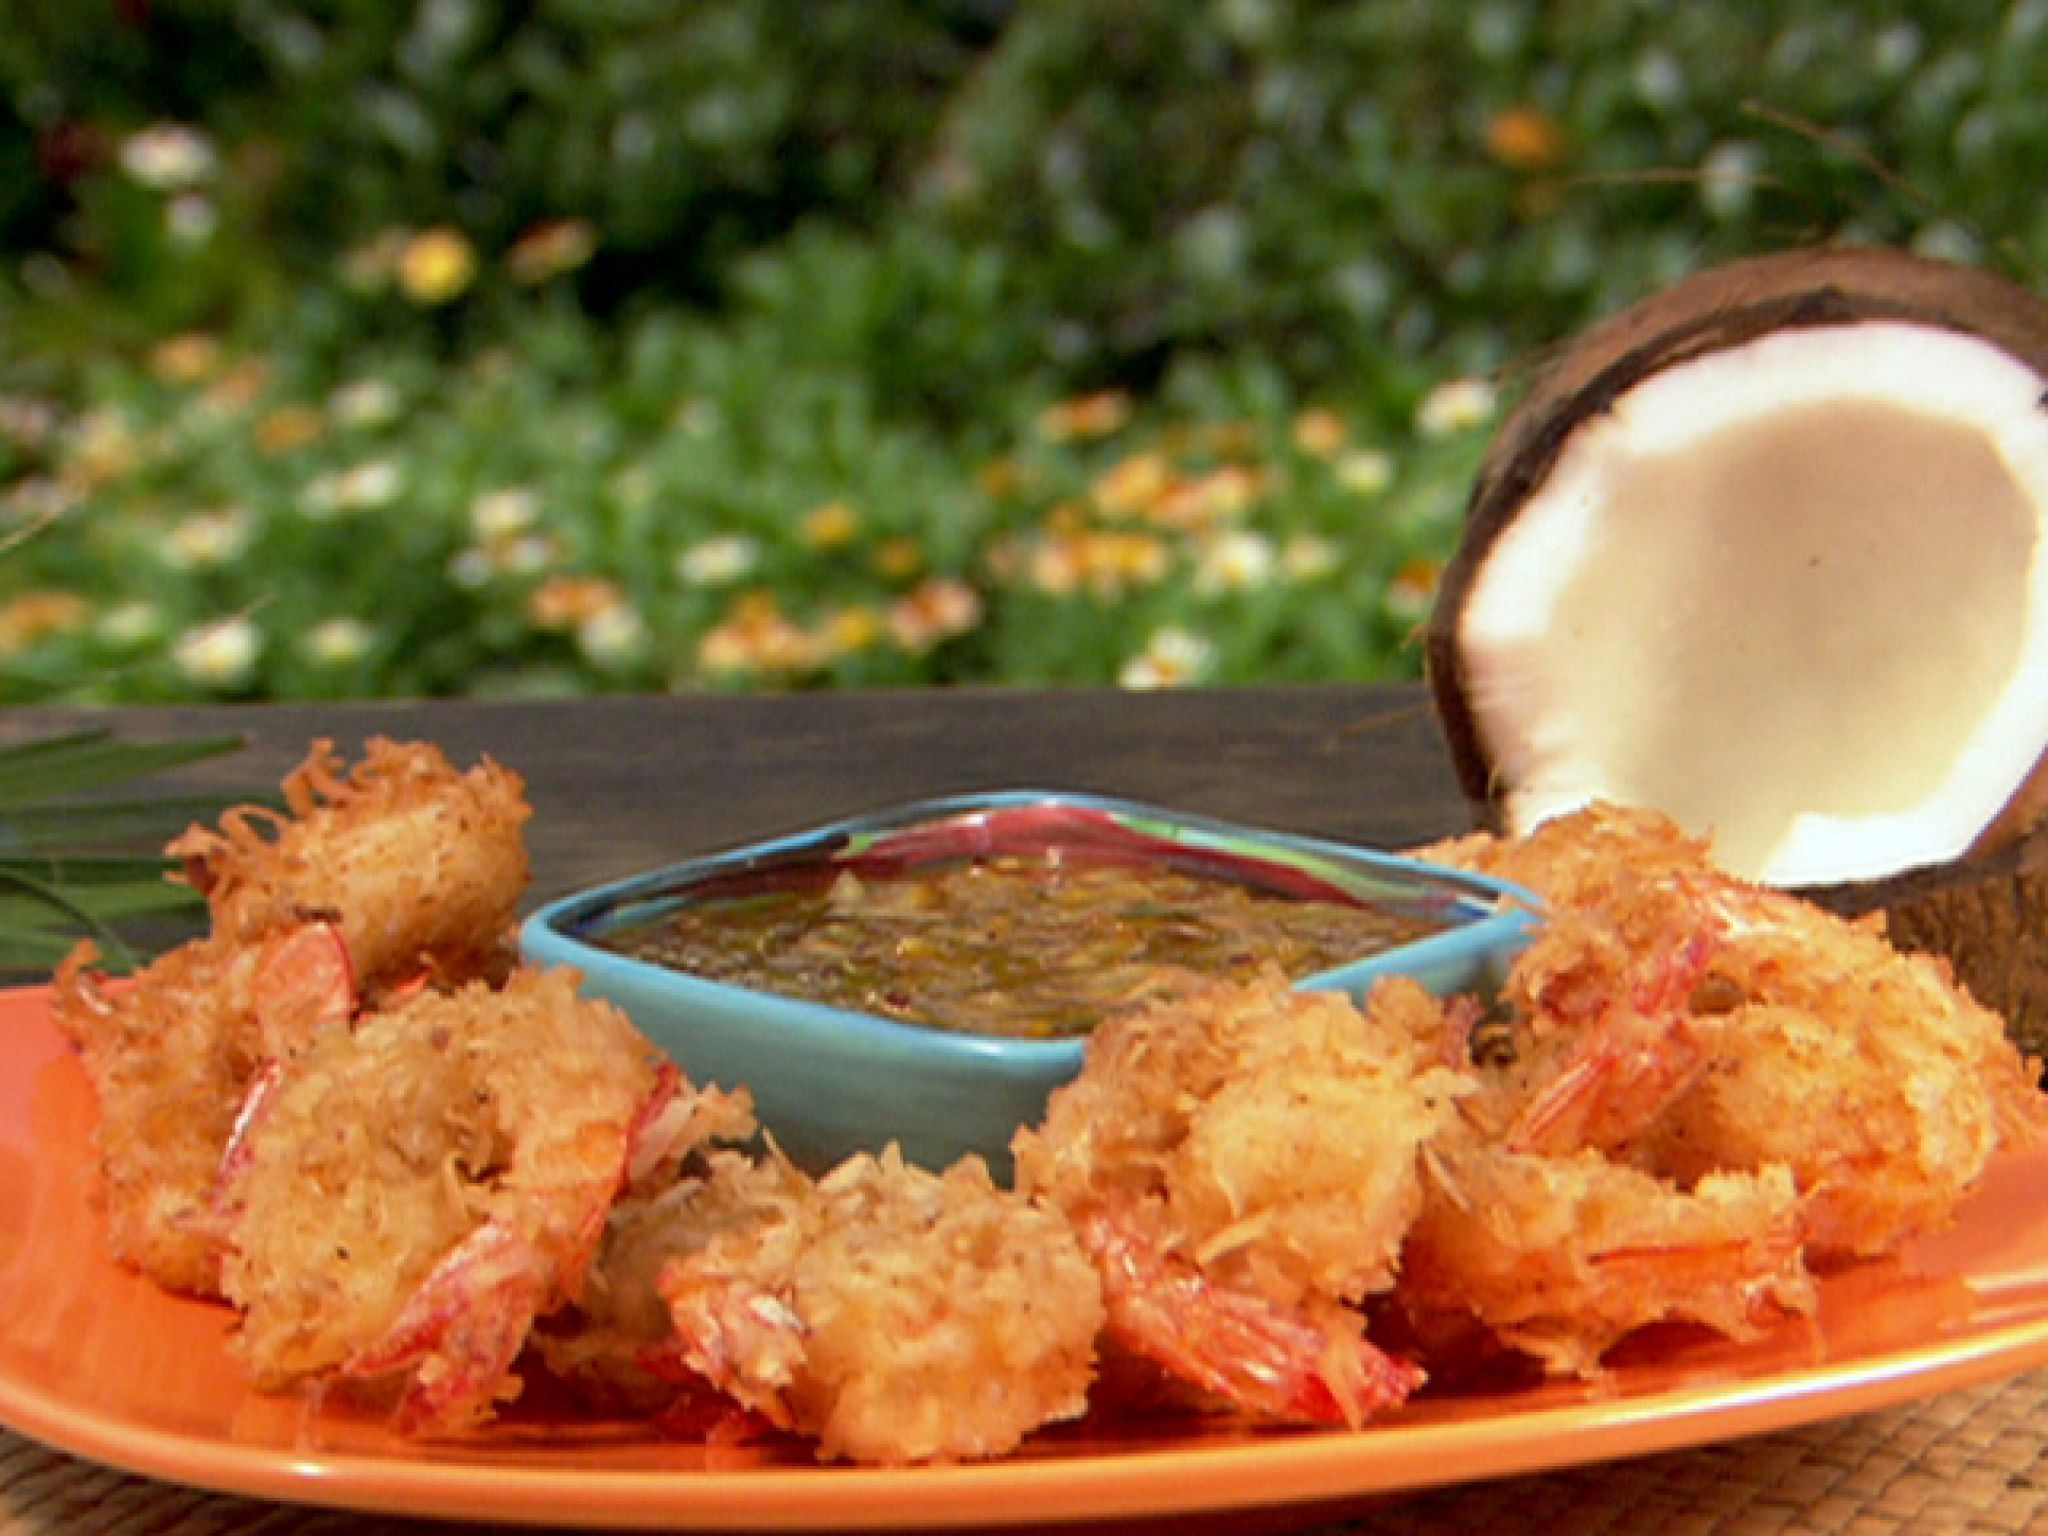 Coconut fried shrimp with dipping sauce recipe fried shrimp coconut fried shrimp with dipping sauce forumfinder Gallery